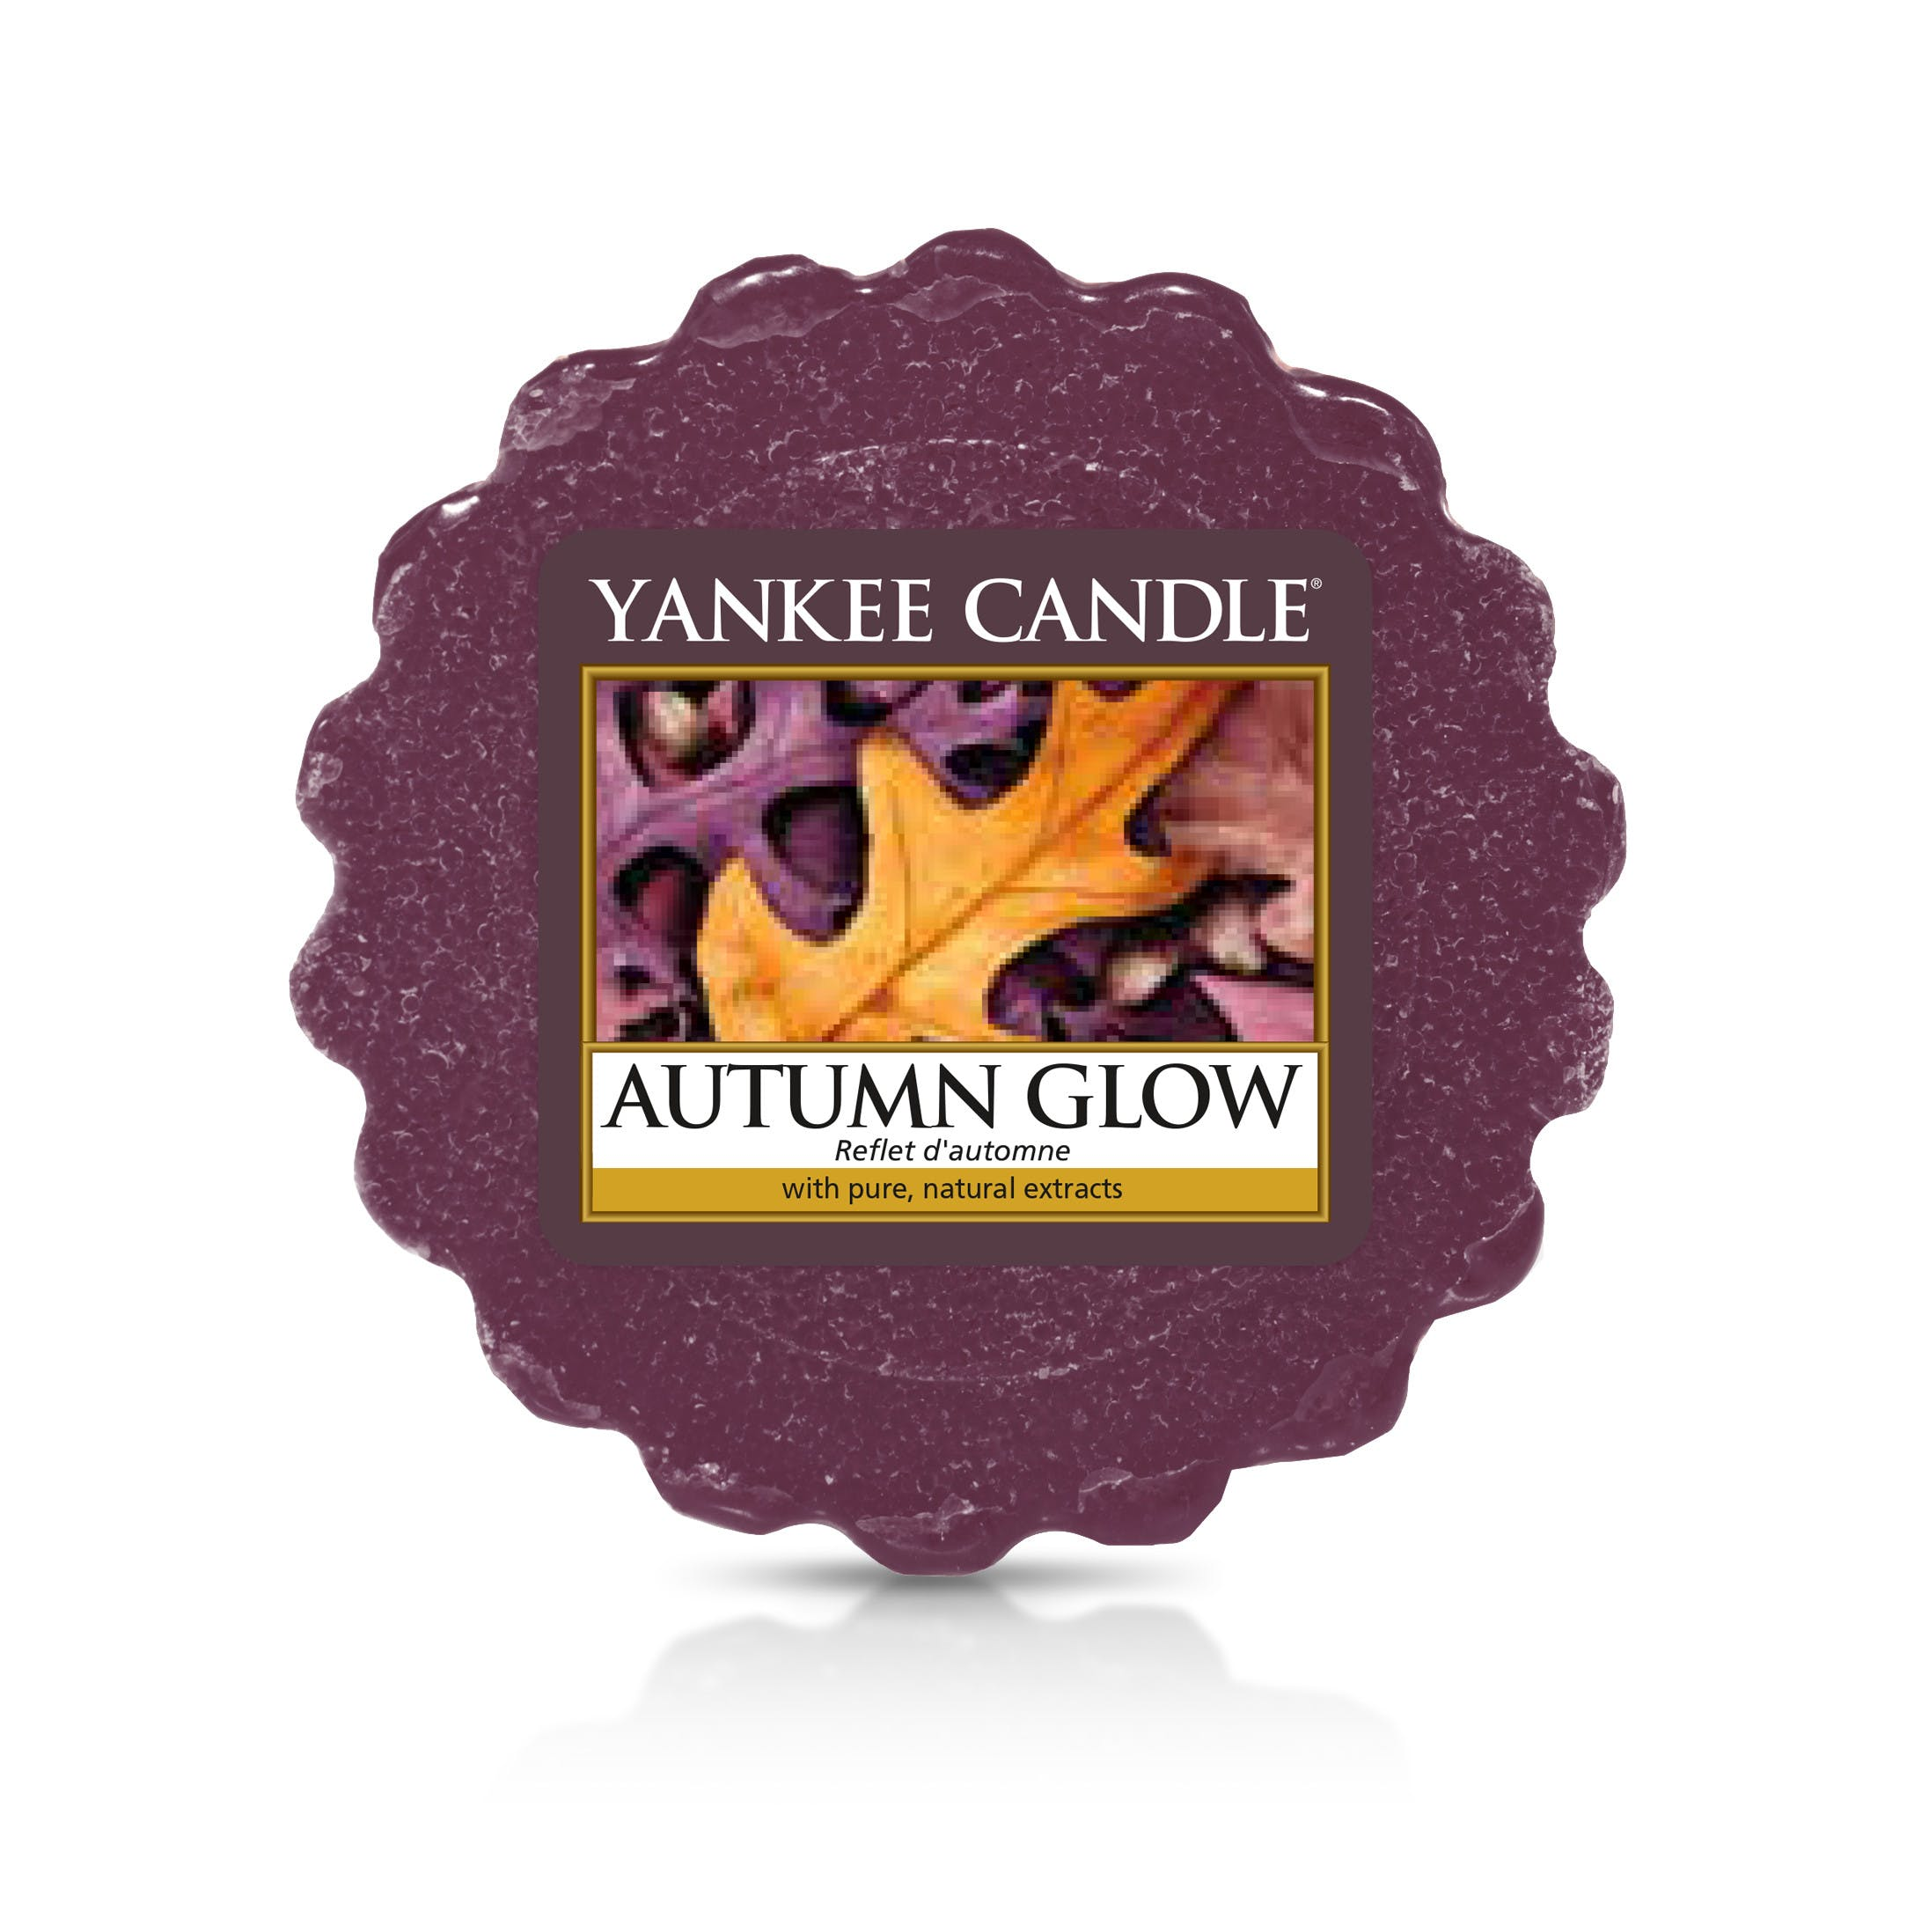 Reflets d'Automne tartelette YANKEE CANDLE